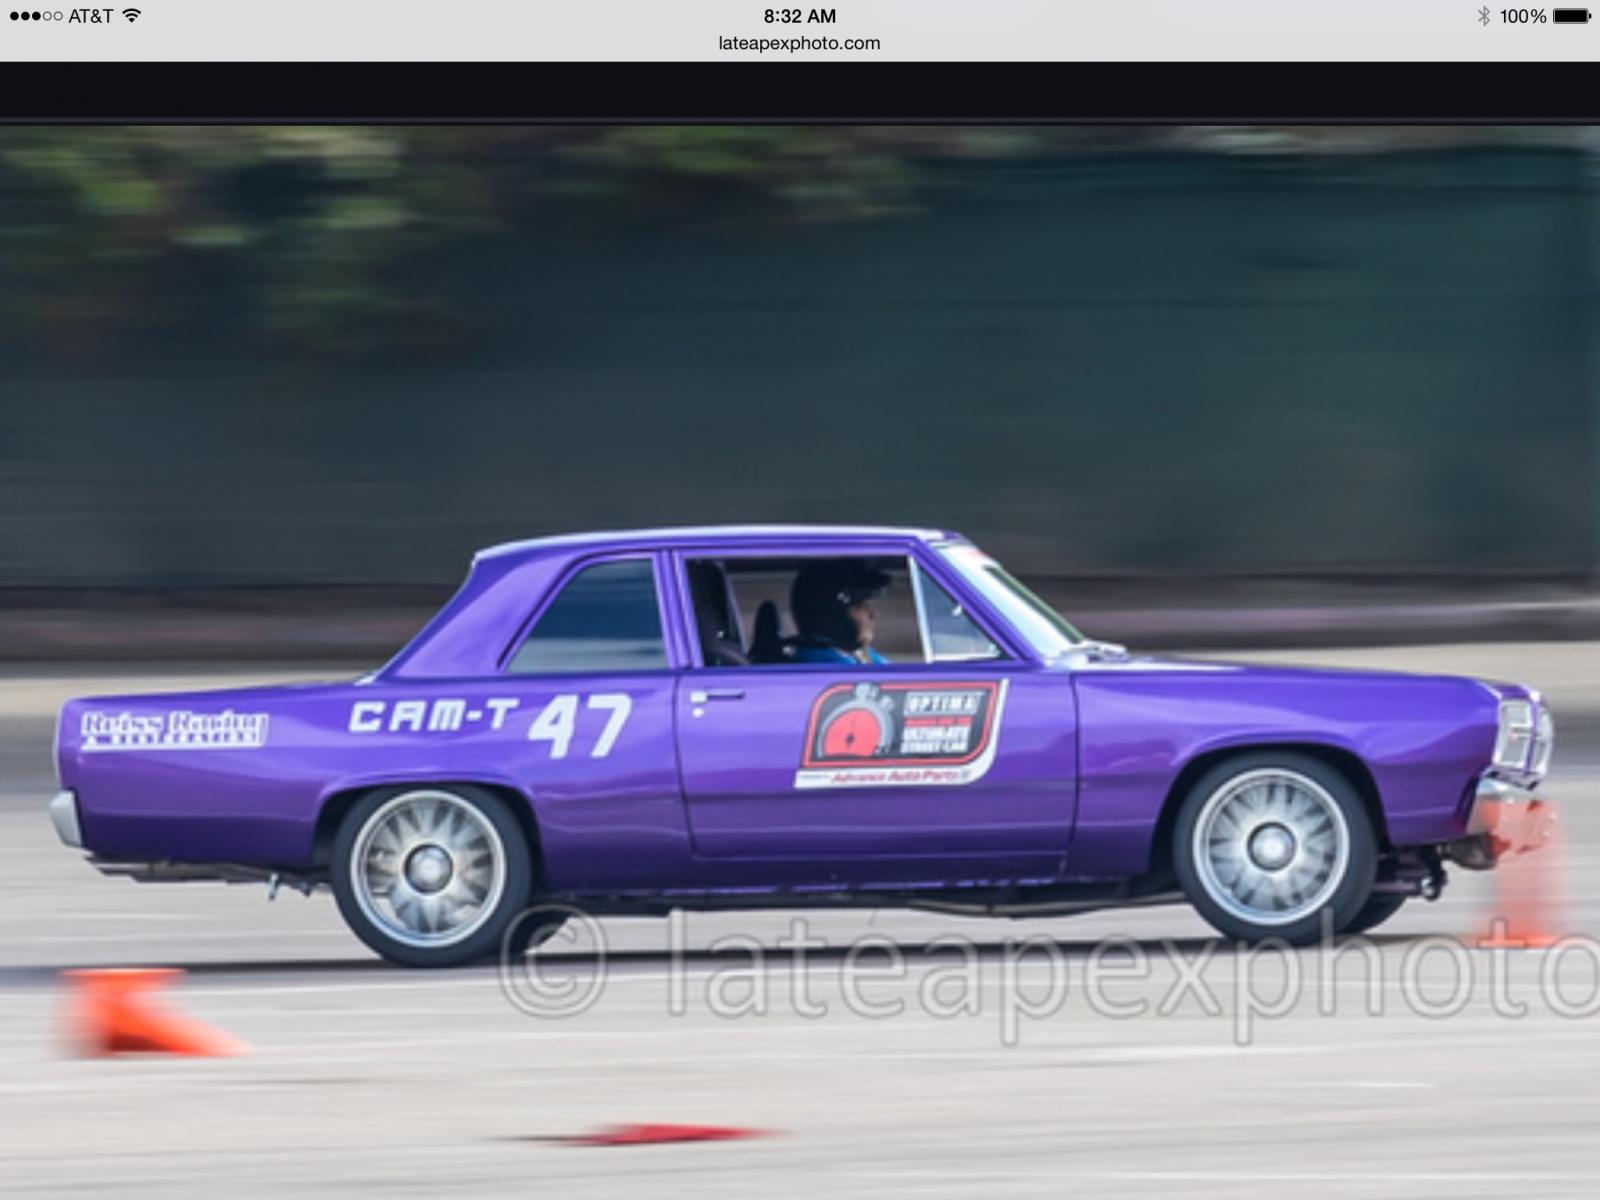 1967 Plymouth Valiant Sorted 2015 Autocross Winner Usca